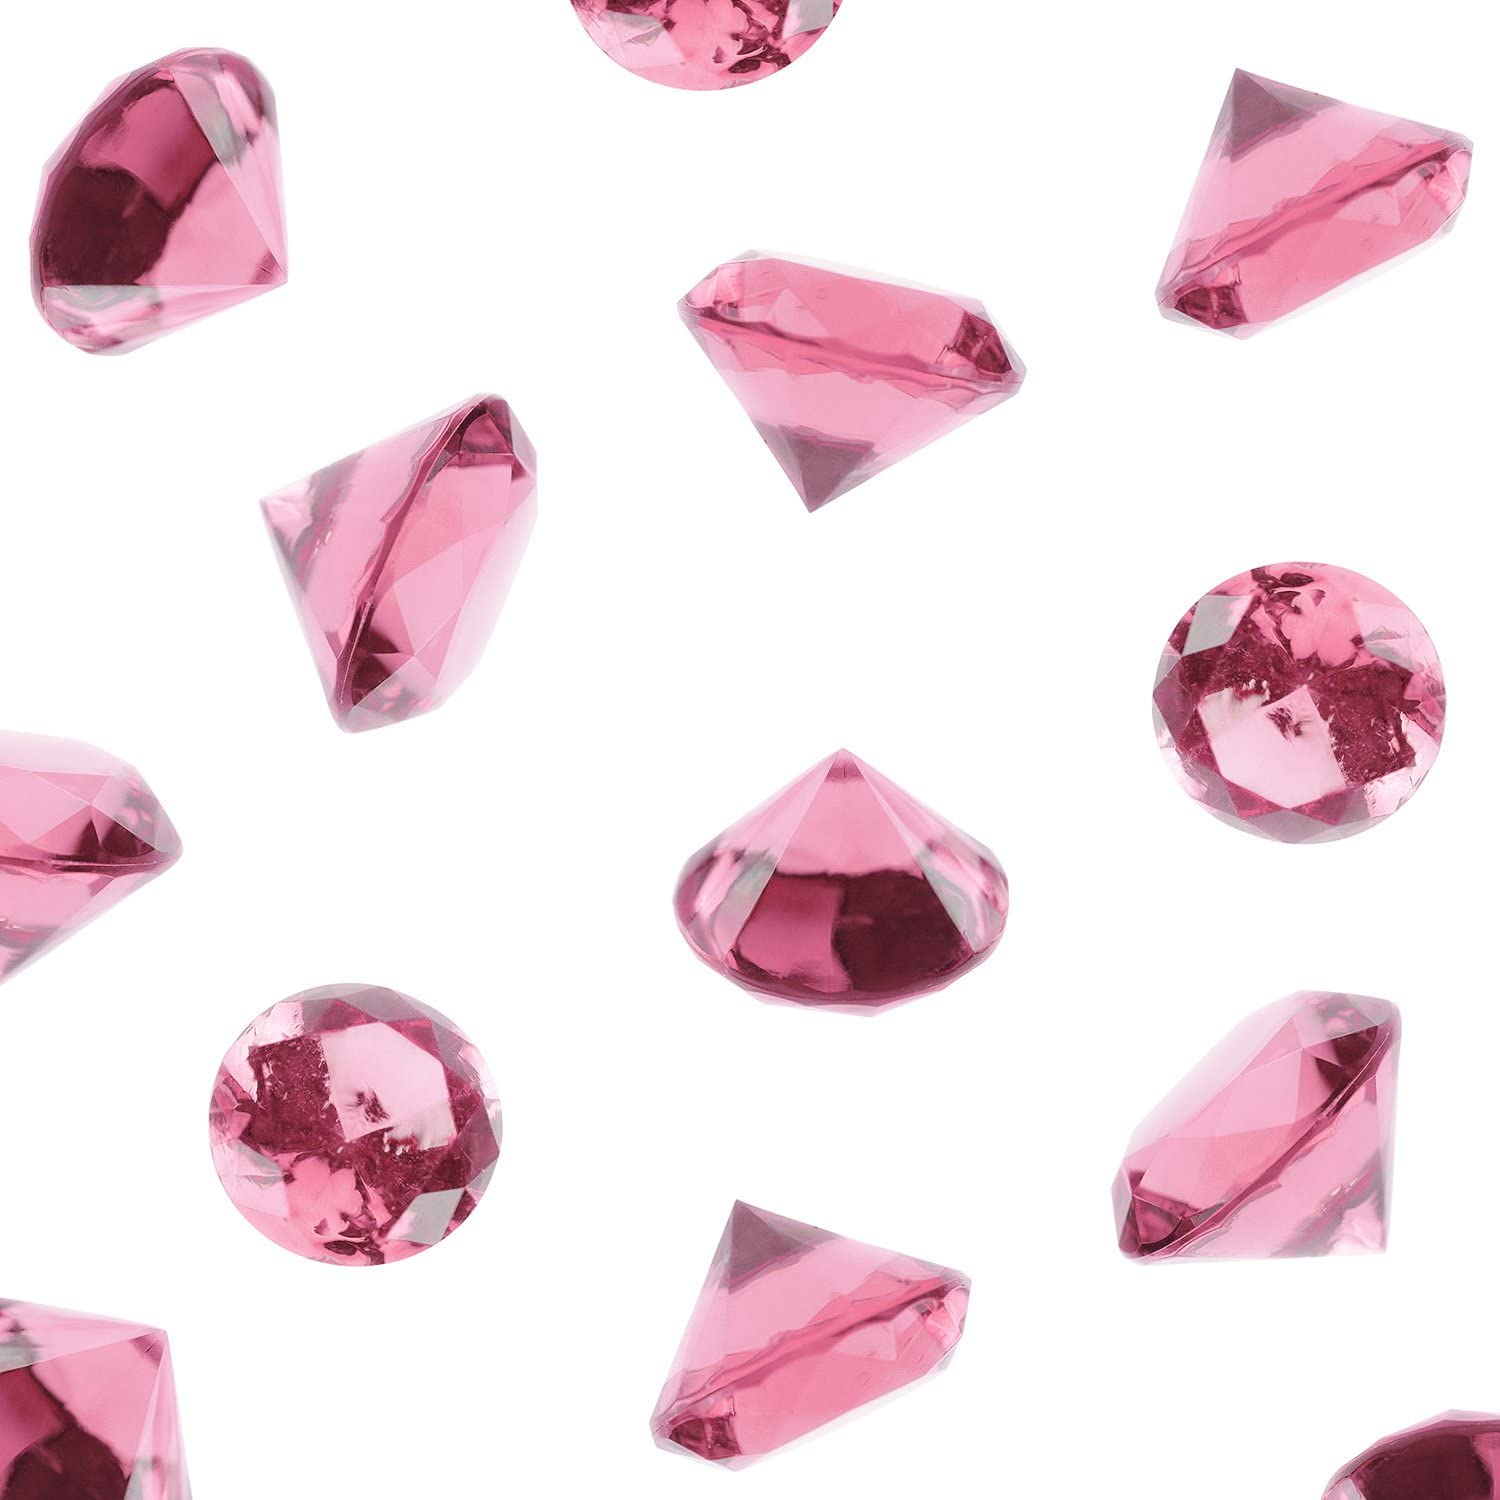 Super Z Outlet Acrylic Color Faux Round Diamond Crystals Treasure Gems for Table Scatters, Vase Fillers, Event, Wedding, Birthday Decoration Favor, Arts & Crafts (1 Pound, 240 Pieces) (Pink)